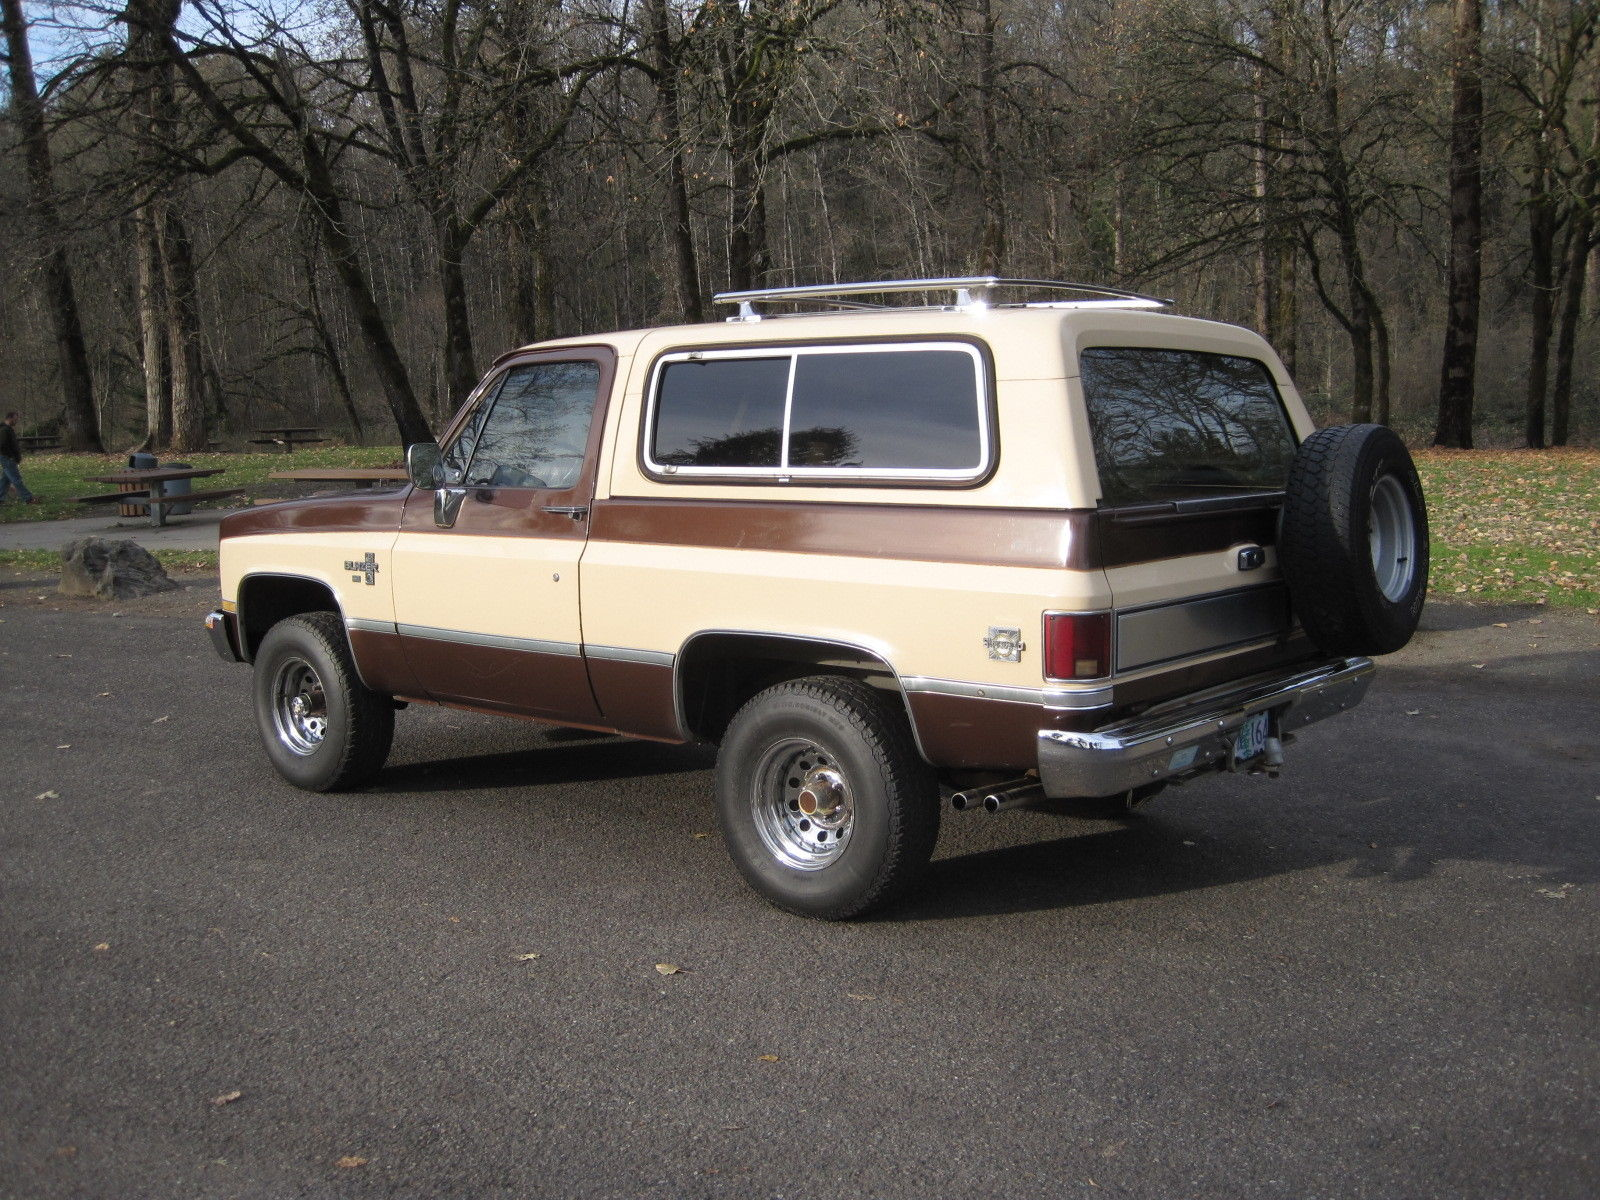 1982 chevrolet k5 blazer silverado 2 door 350 4x4 stock one owner many options. Black Bedroom Furniture Sets. Home Design Ideas